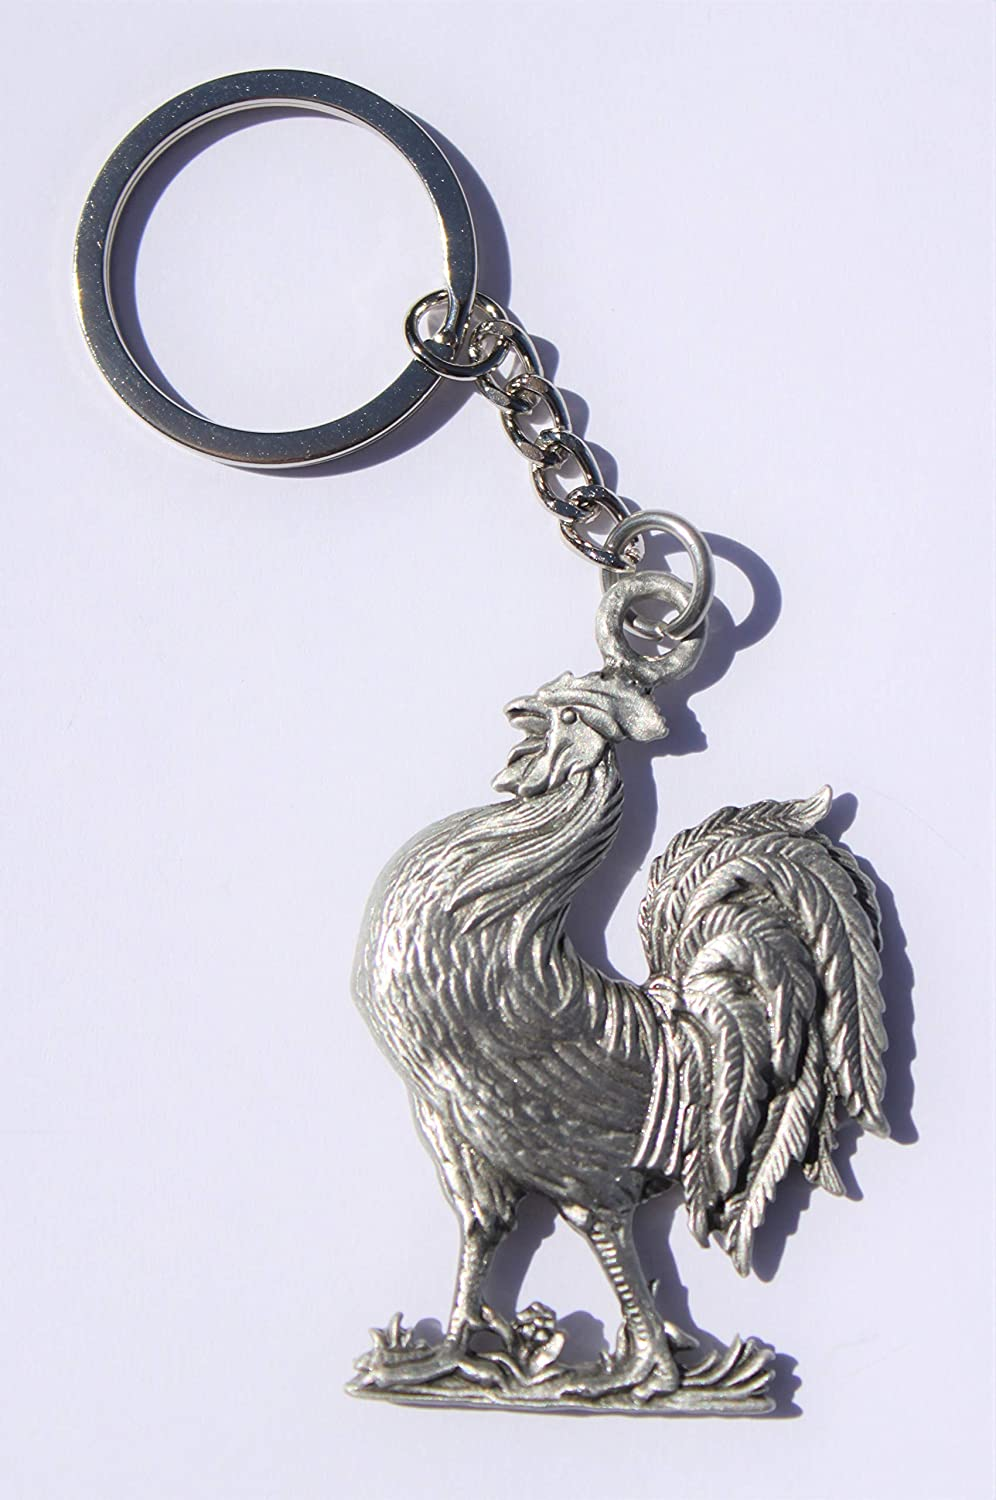 Hastings Pewter Company Lead Free Pewter Peace Sign Keychain hippy style key chain  Made in Michigan made in MI made  gift